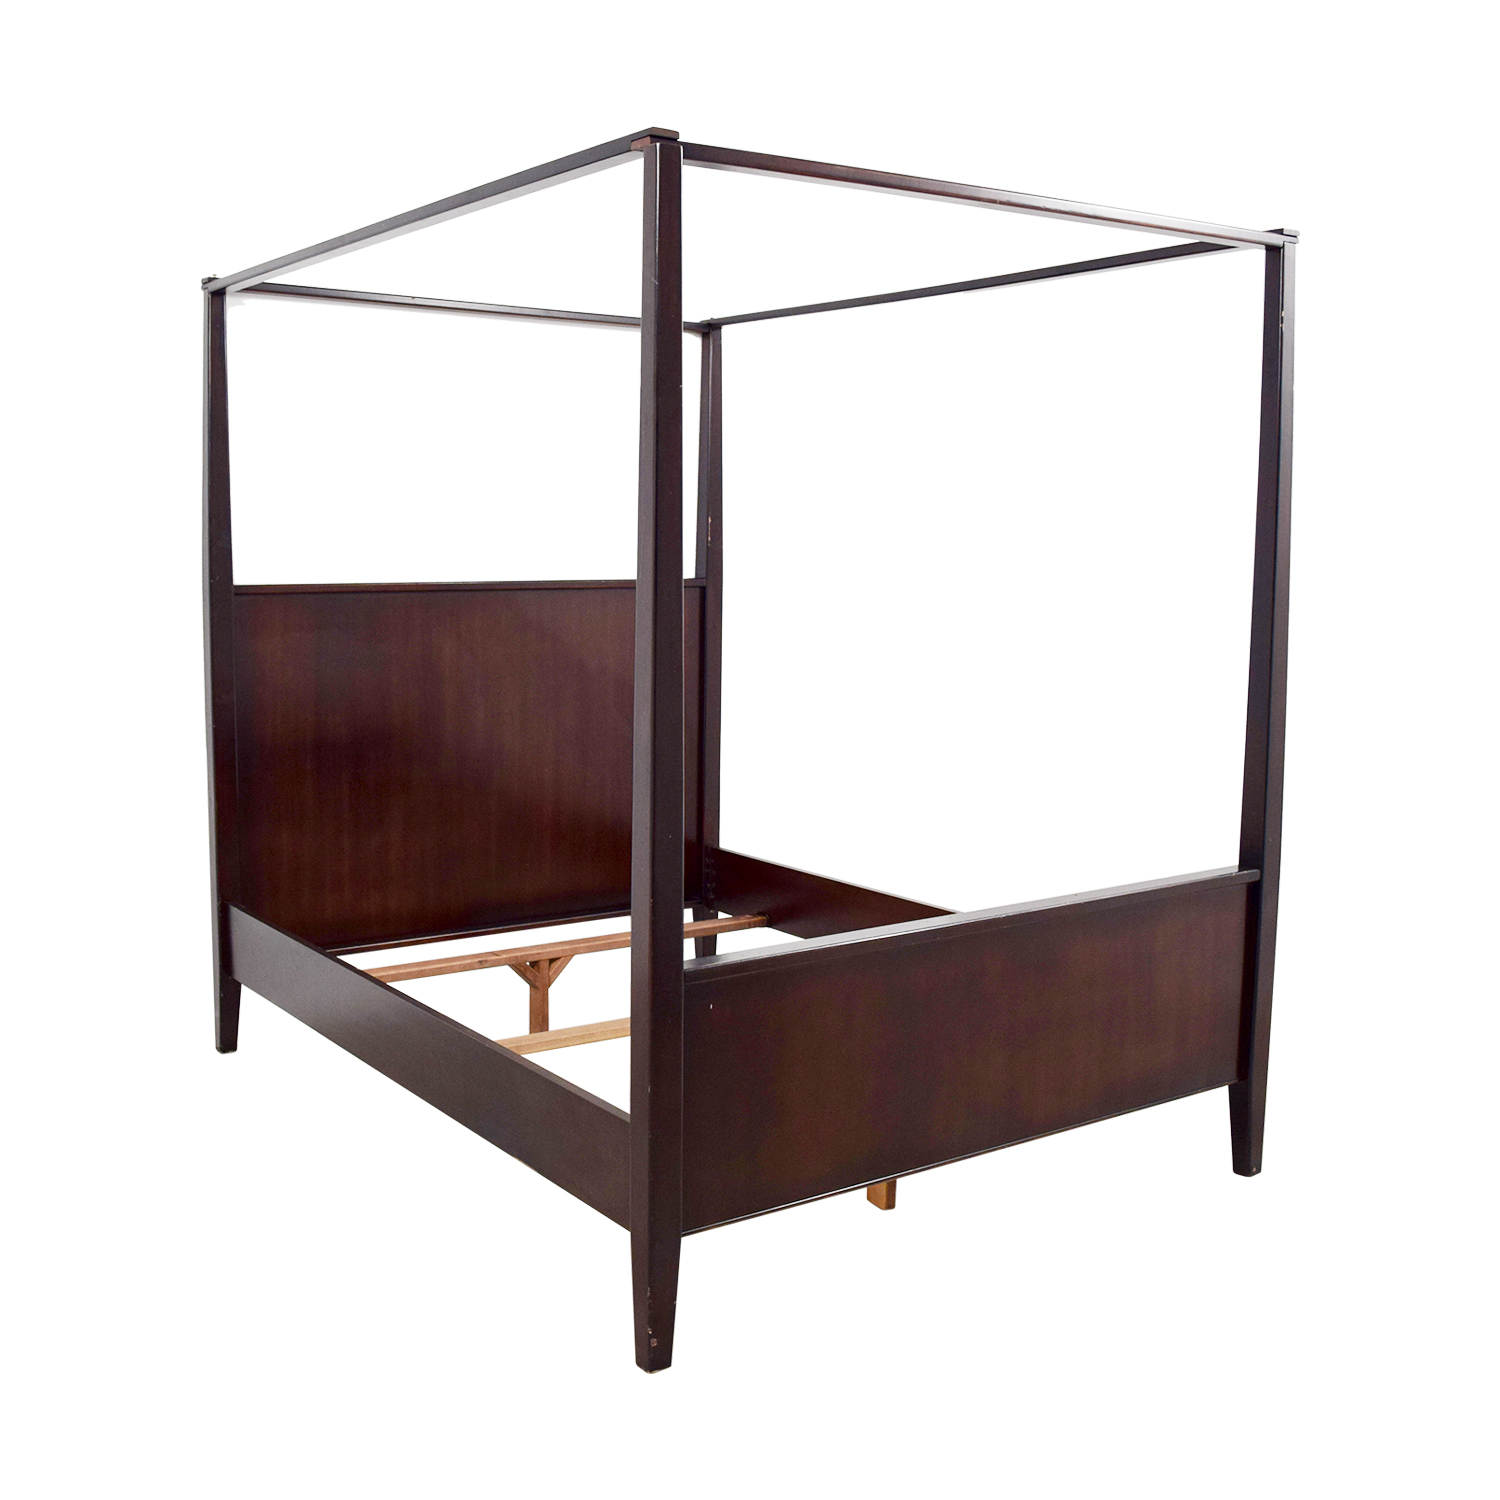 4 Poster Bed Frame Queen 88 Off Crate And Barrel Crate And Barrel Queen Four Poster